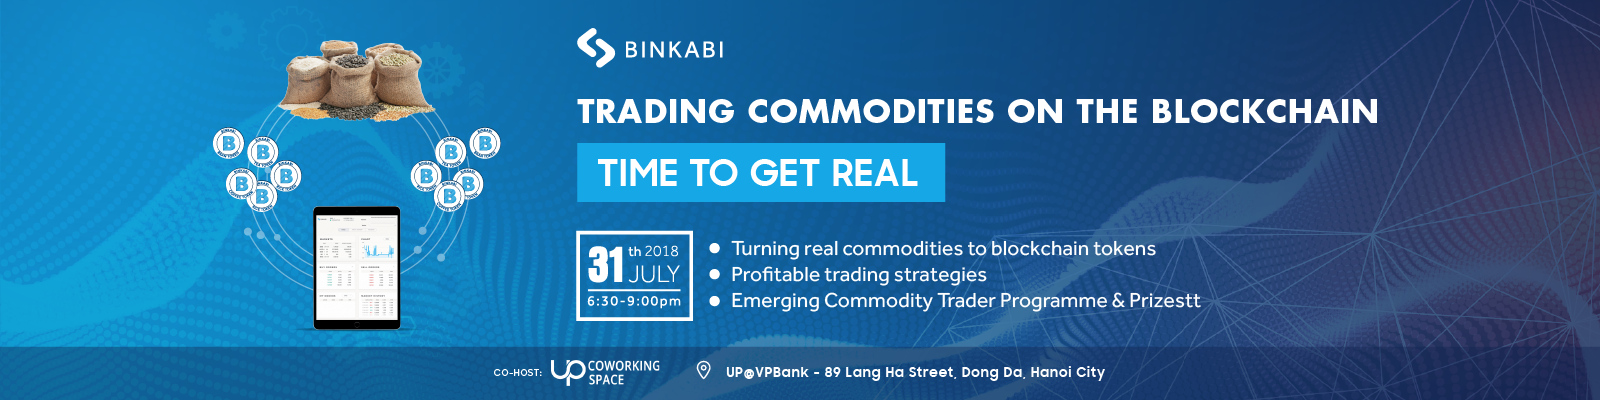 Binkabi Hanoi Meetup: Trading commodities on the blockchain - Time to GET REAL!